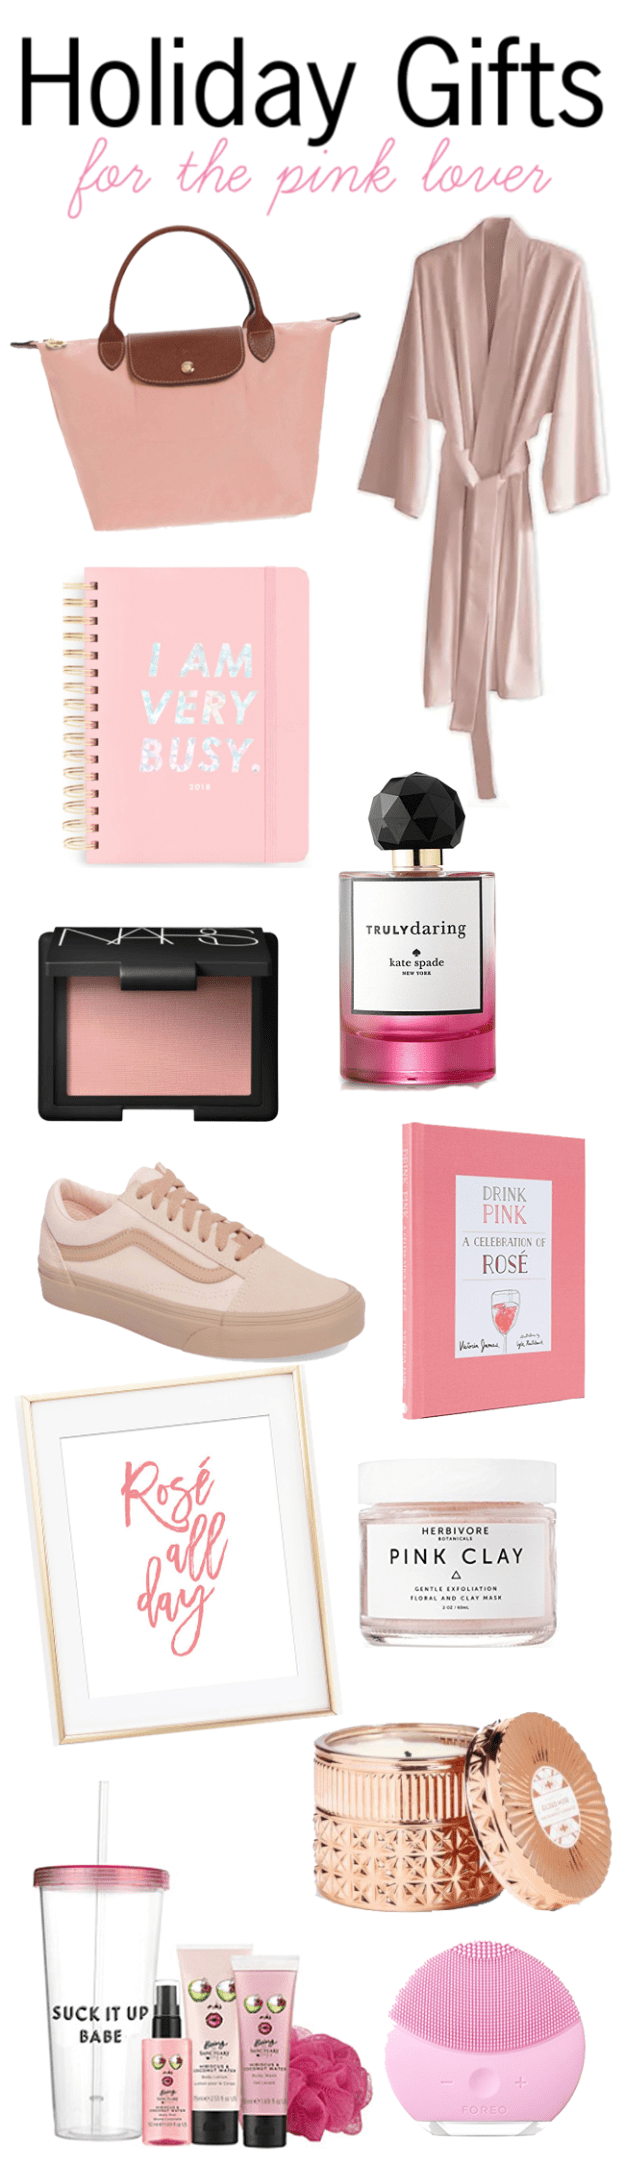 Holiday Gift Guide: Gifts for the Pink Lover